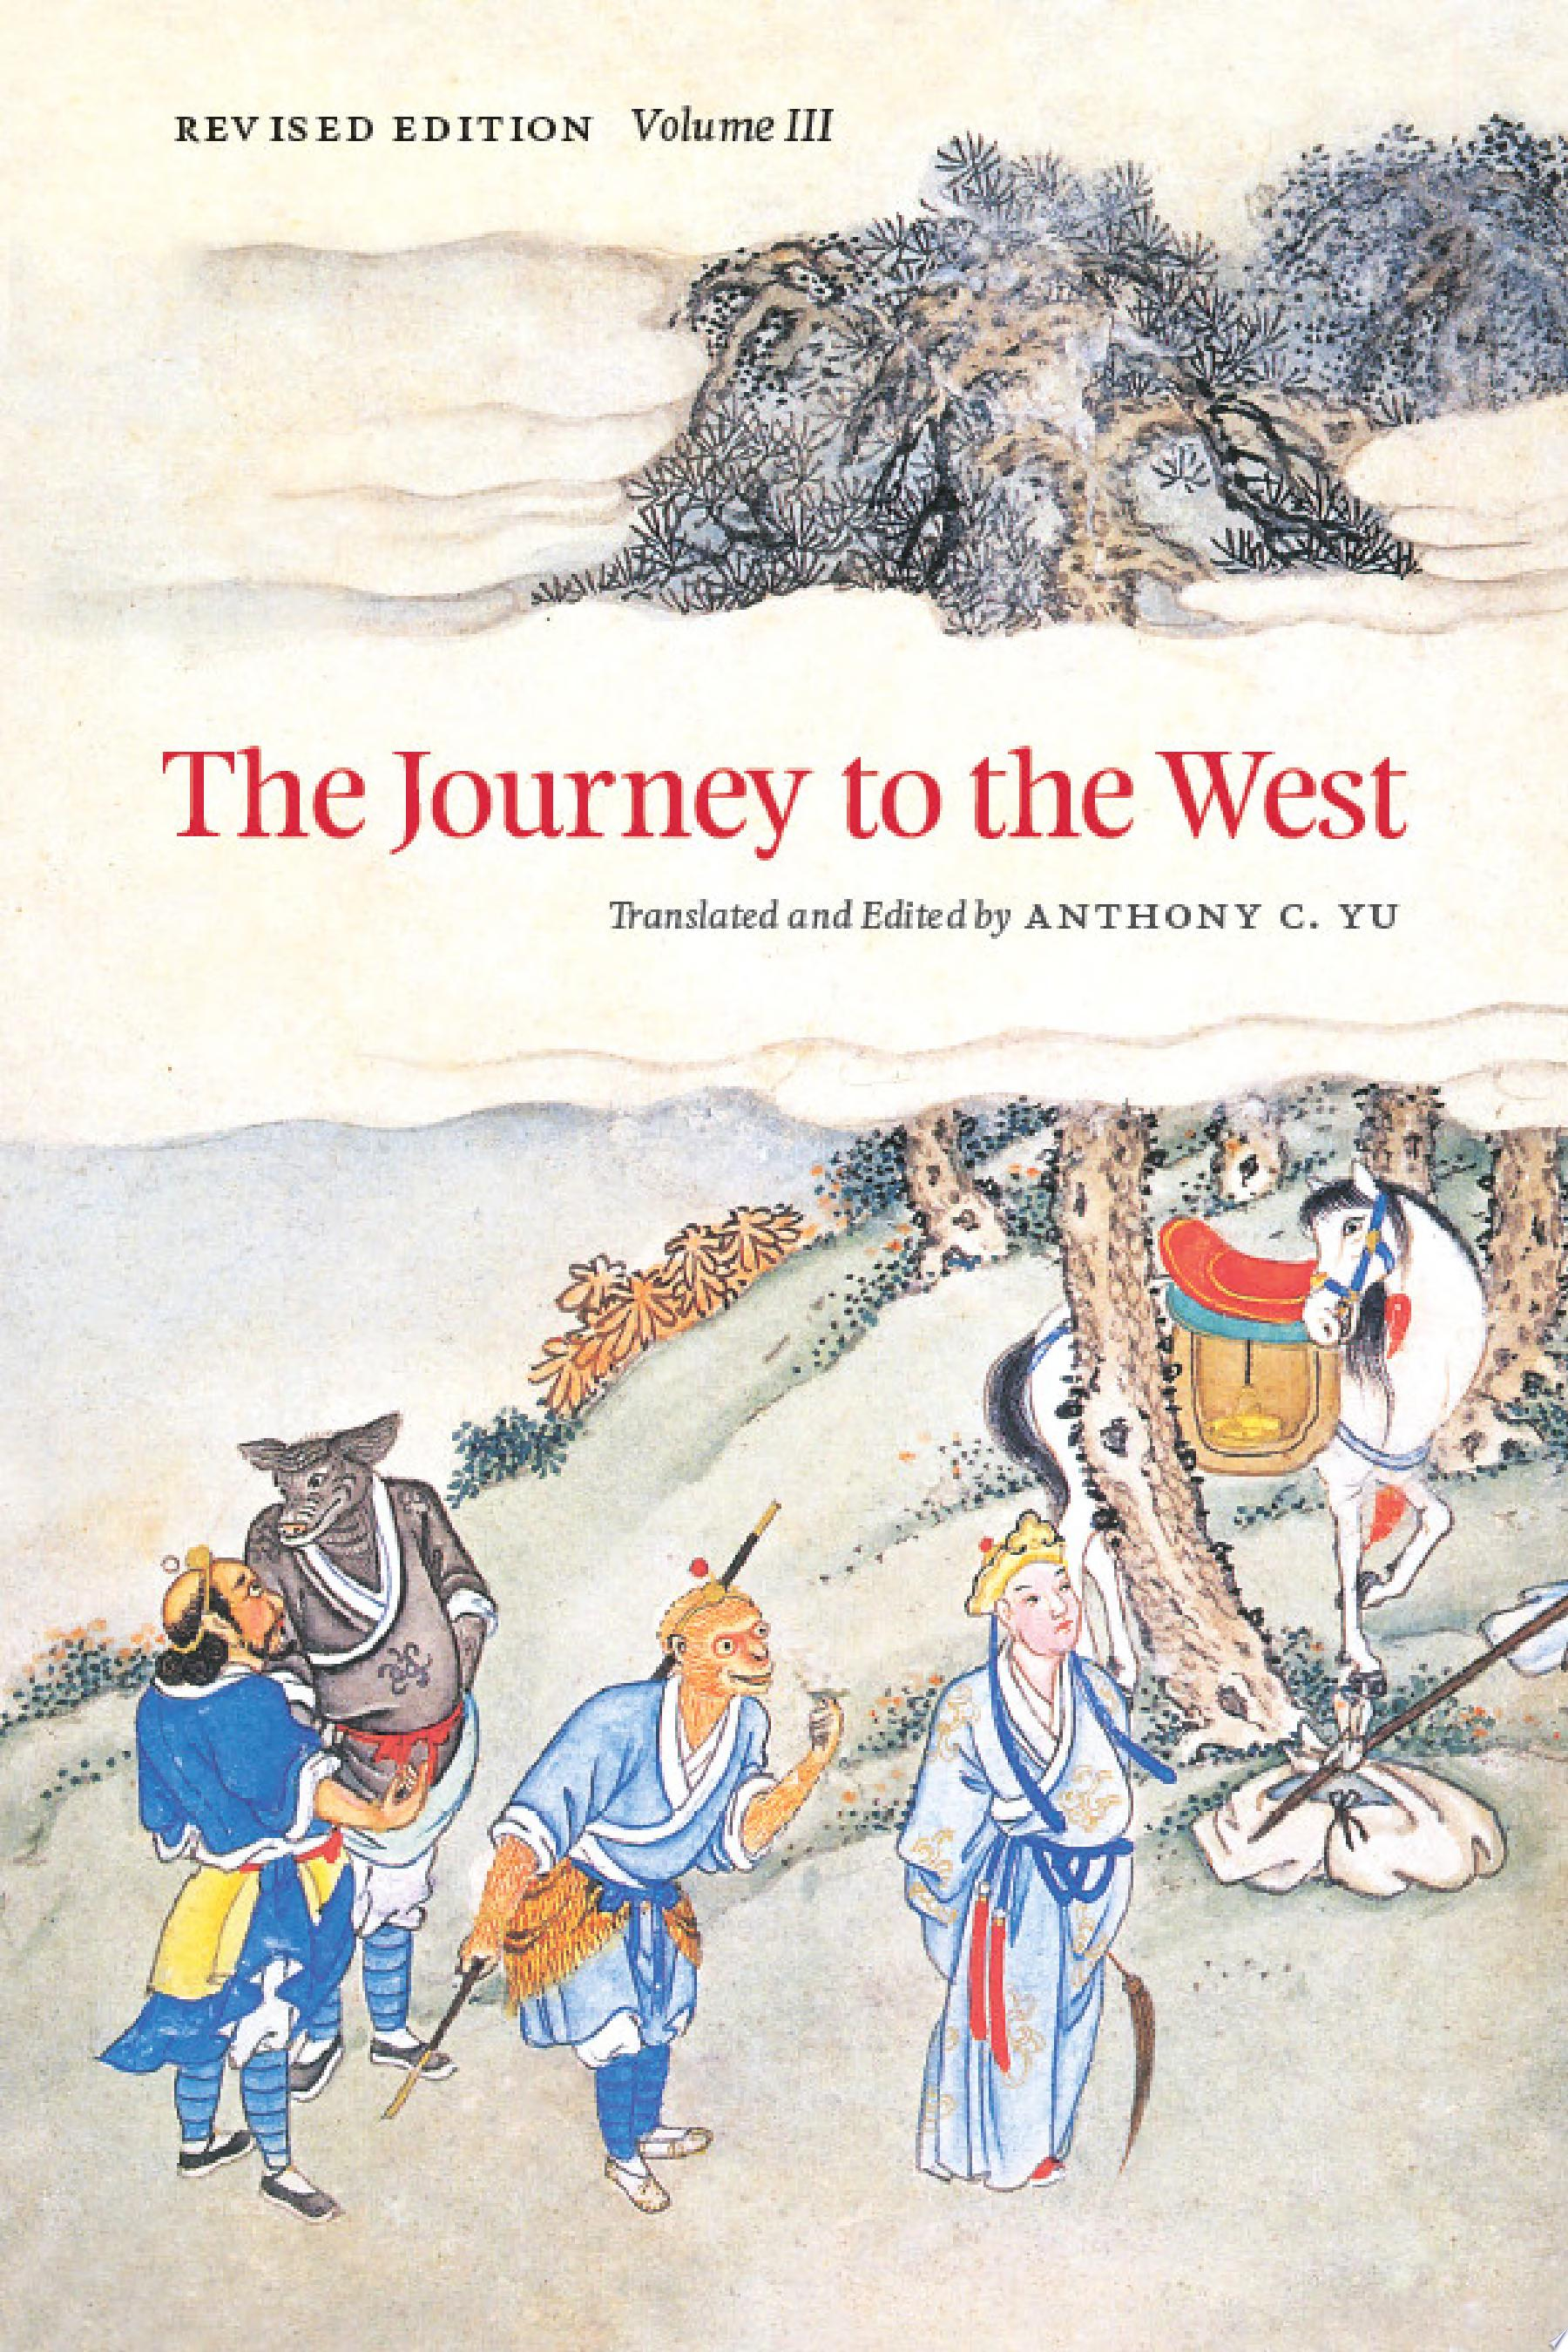 The Journey to the West  Revised Edition